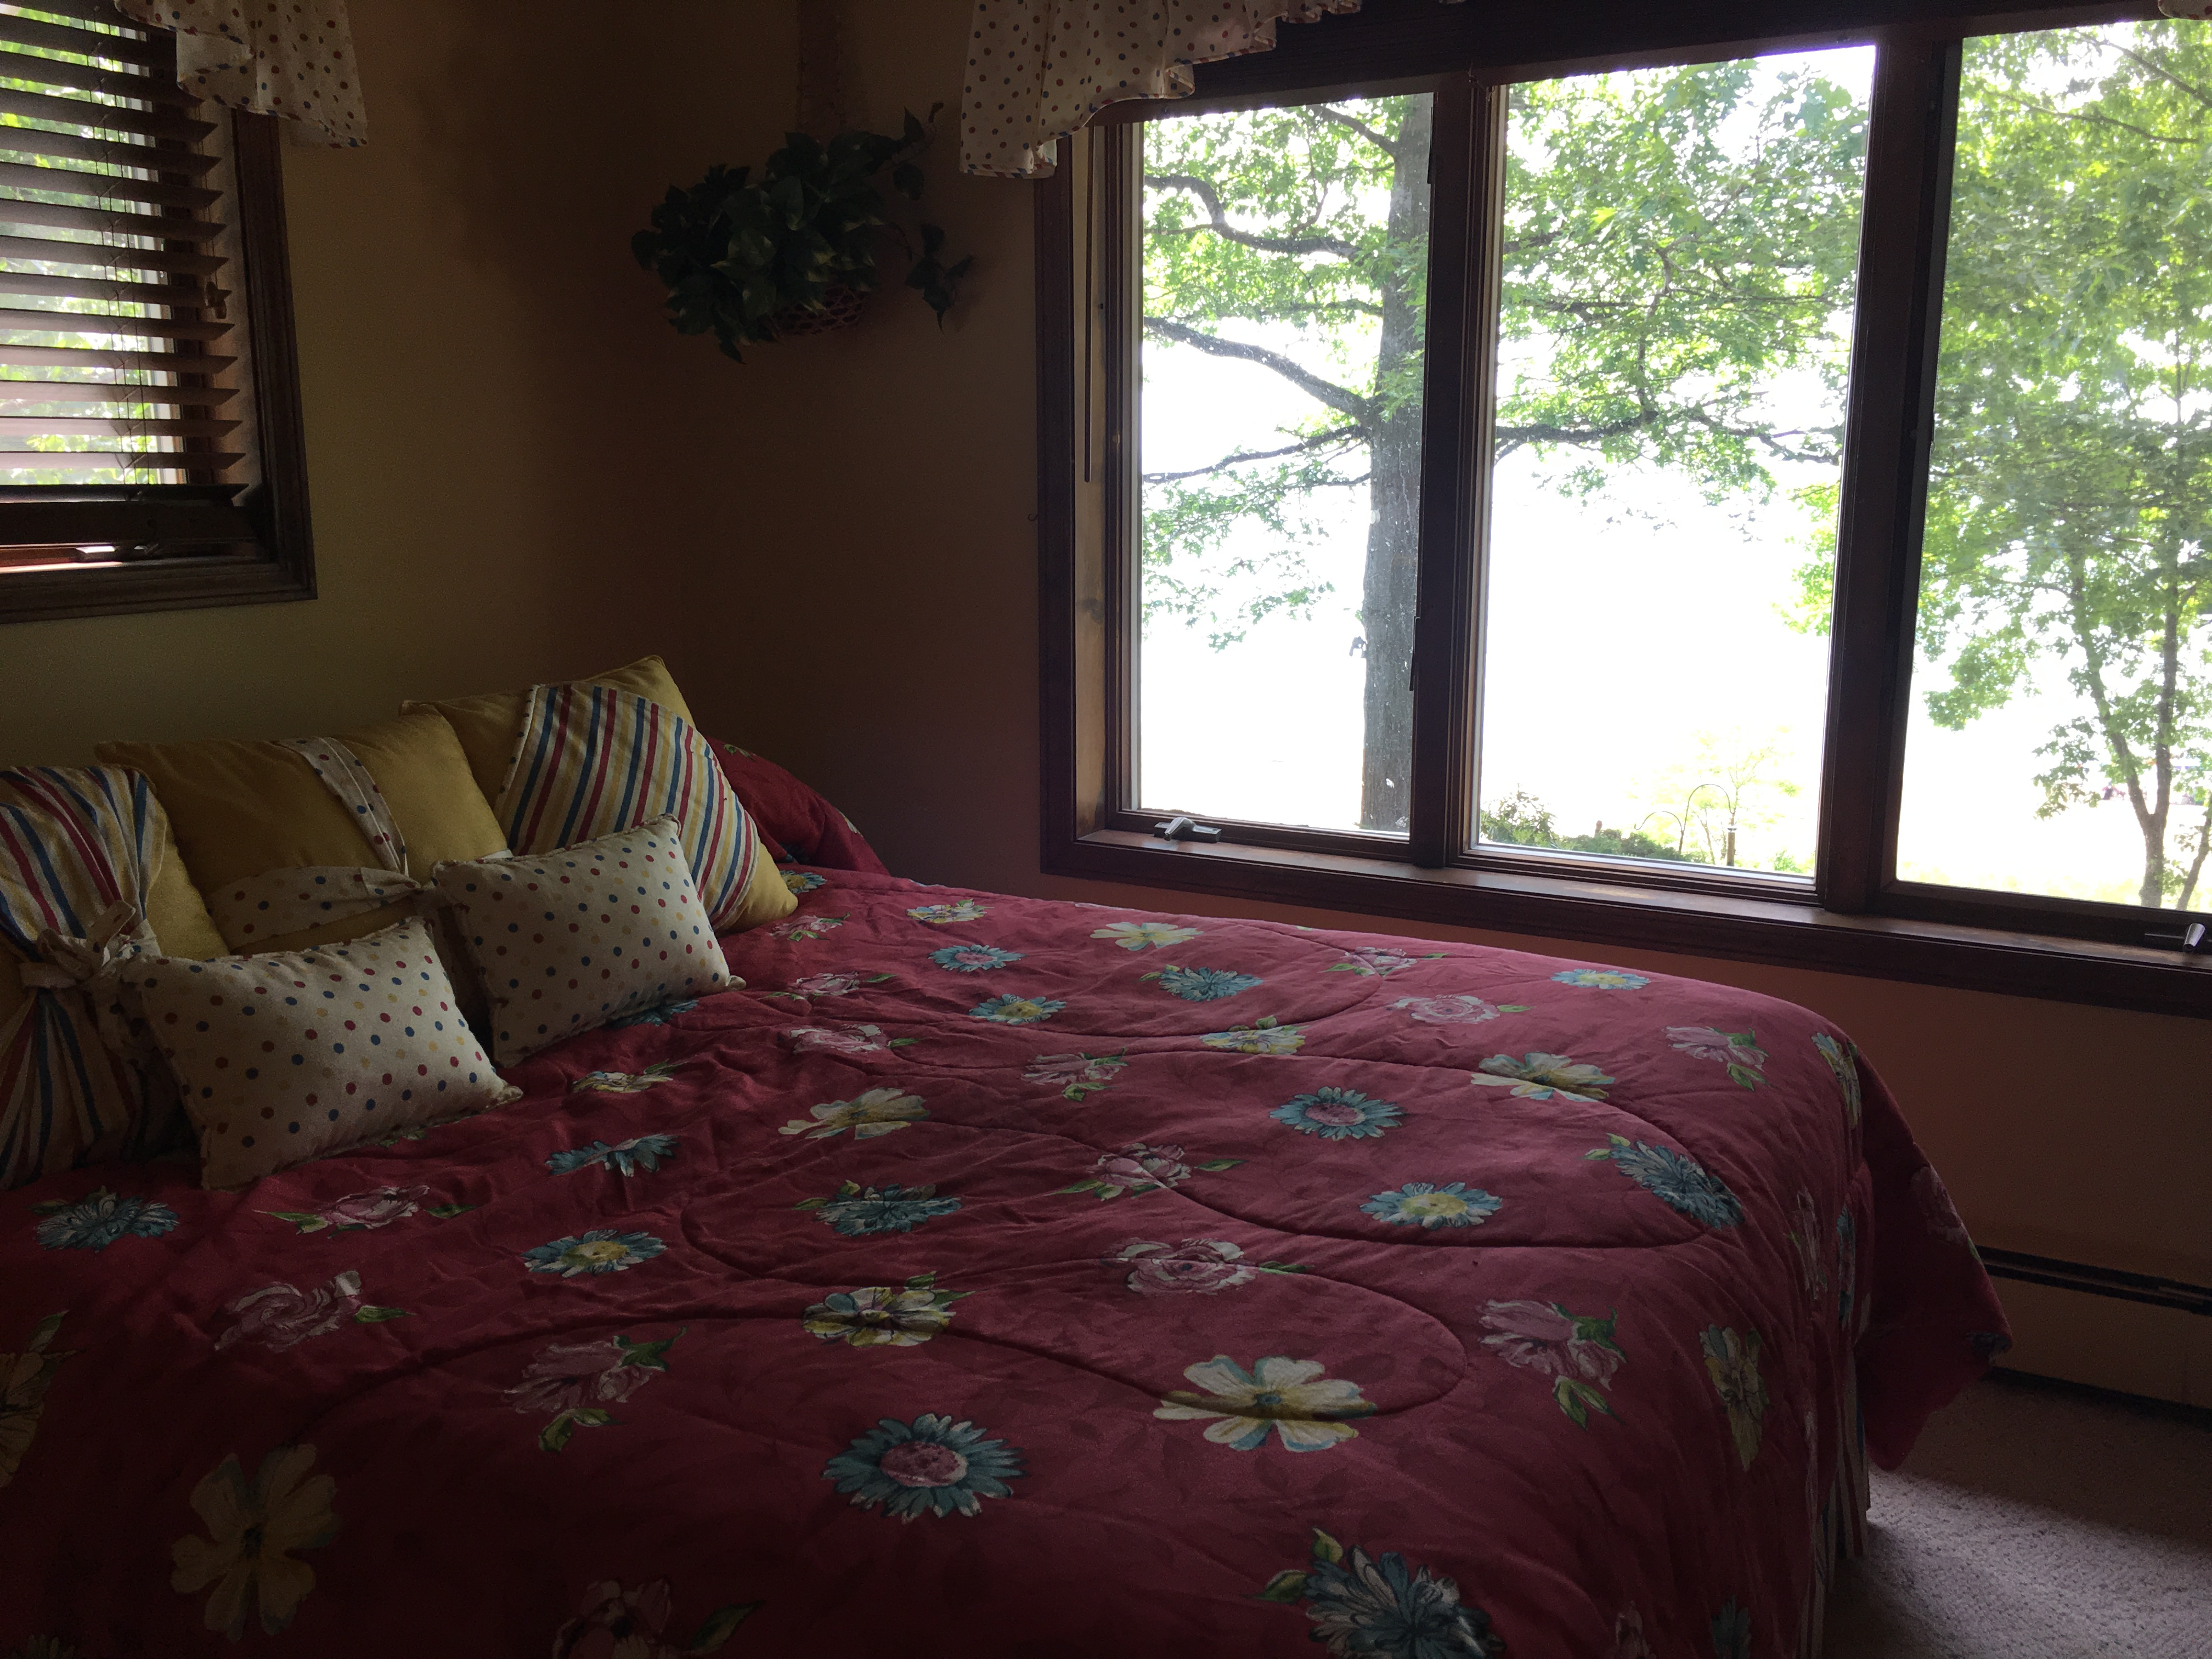 Bedroom 2 with lake view - Queen bed